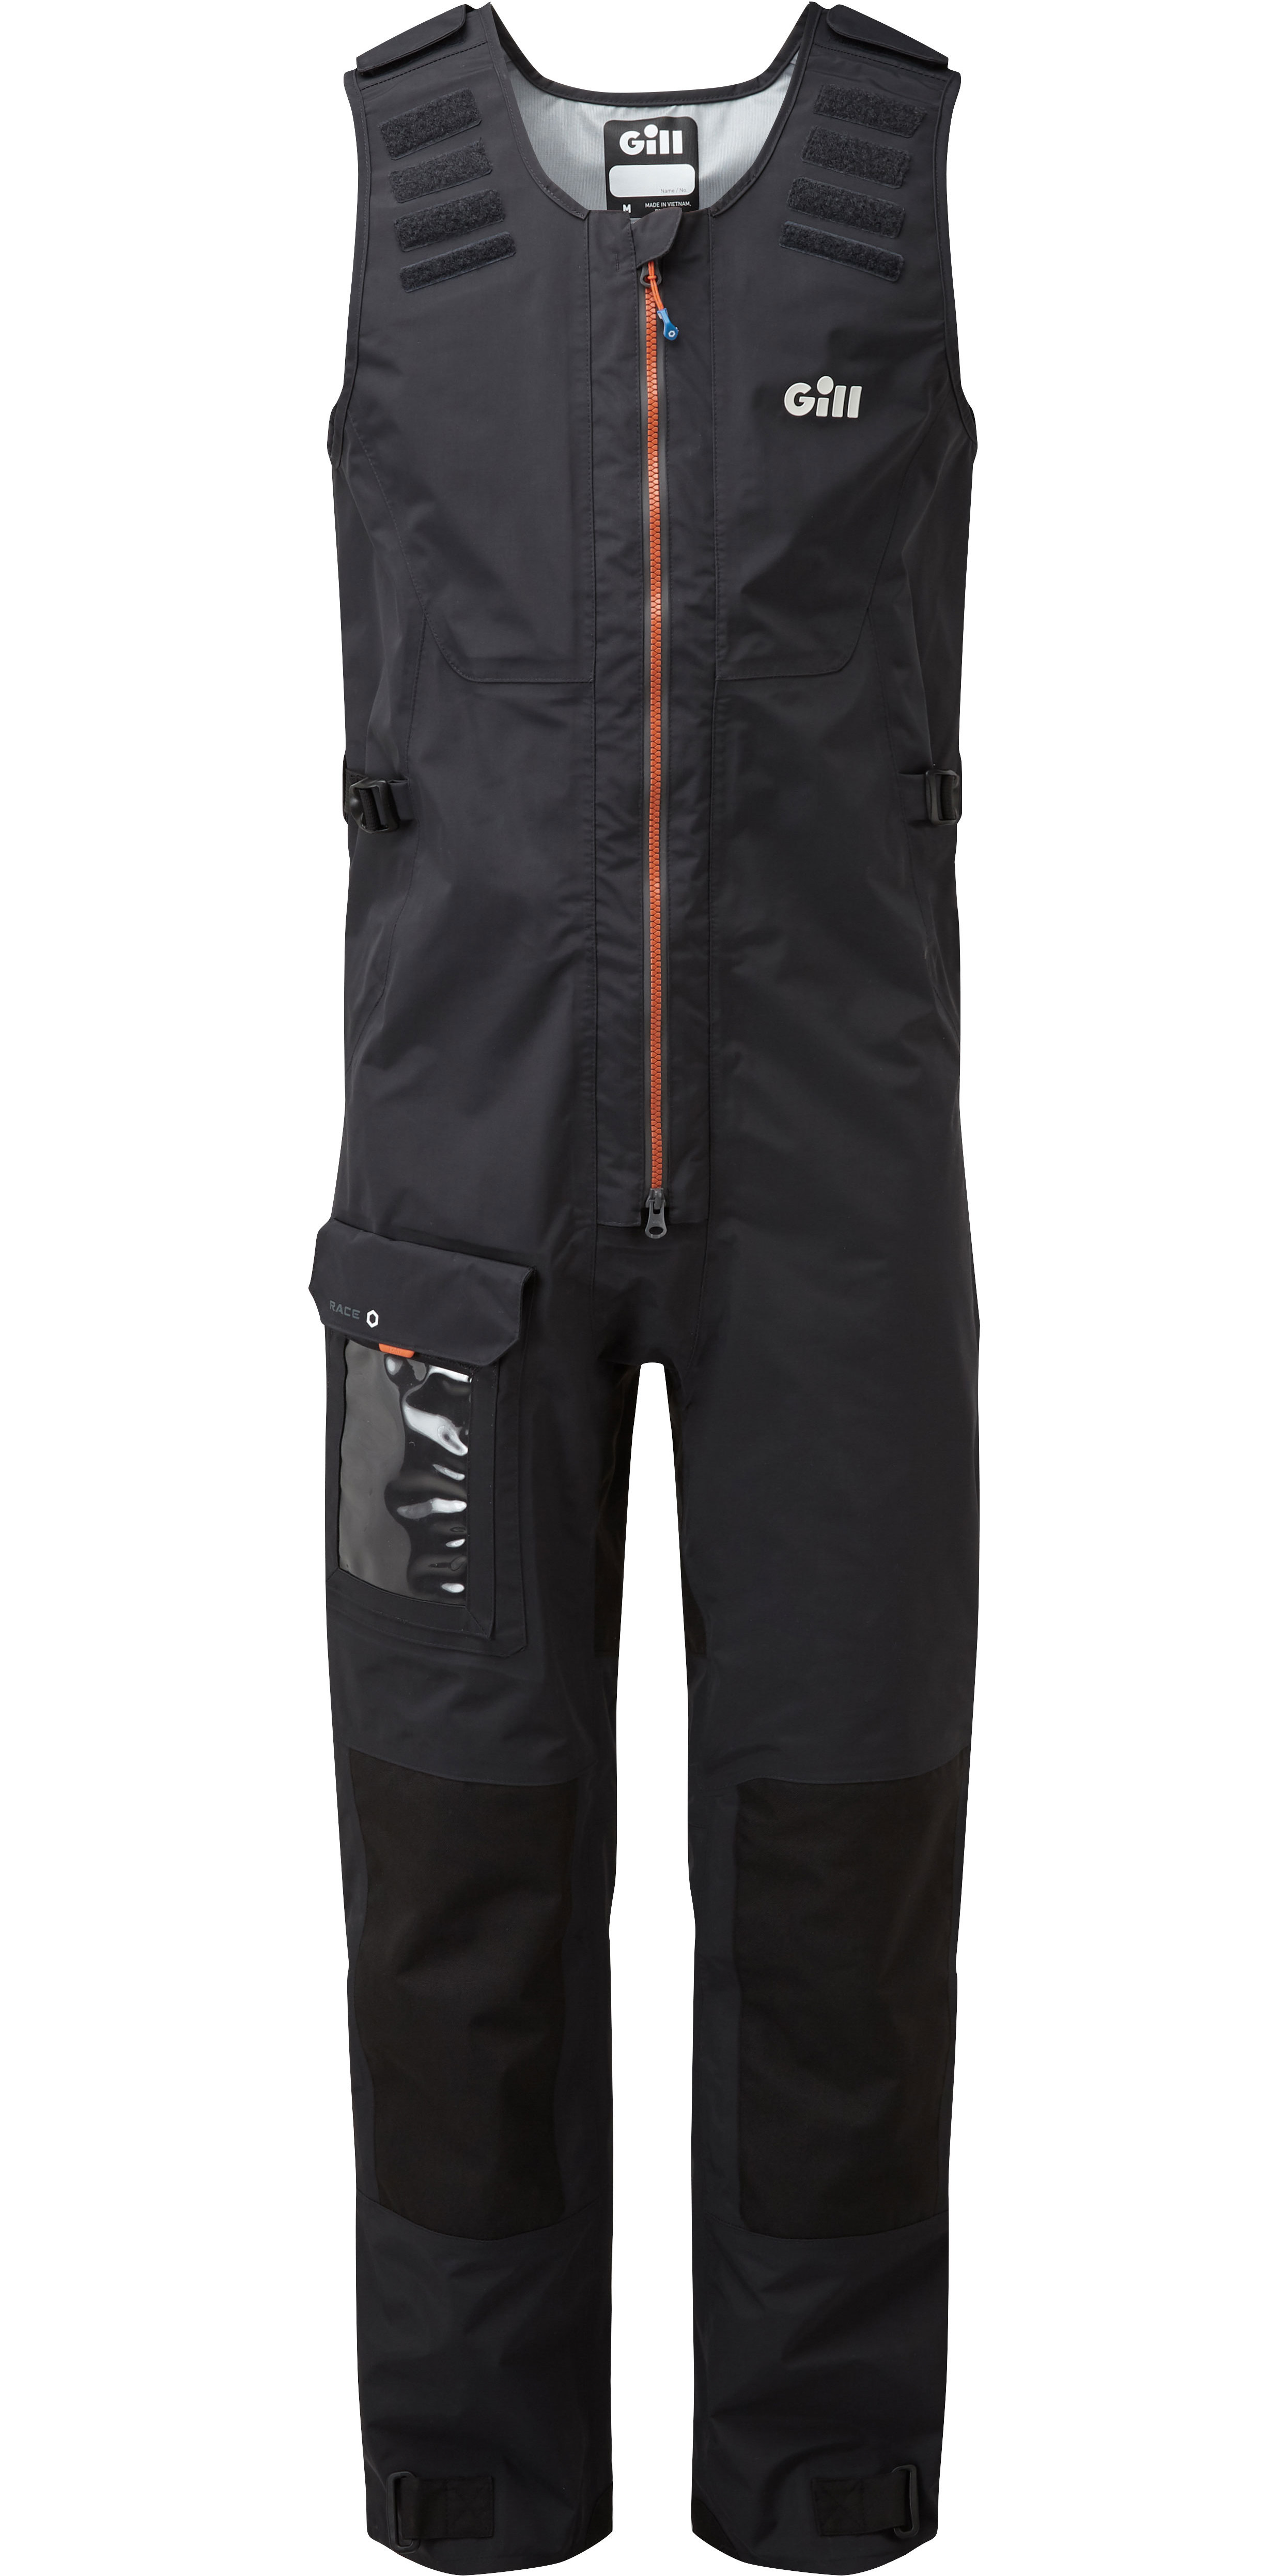 2020 Gill Mens Race Fusion Smock RS24 & Salopettes RS25 Black